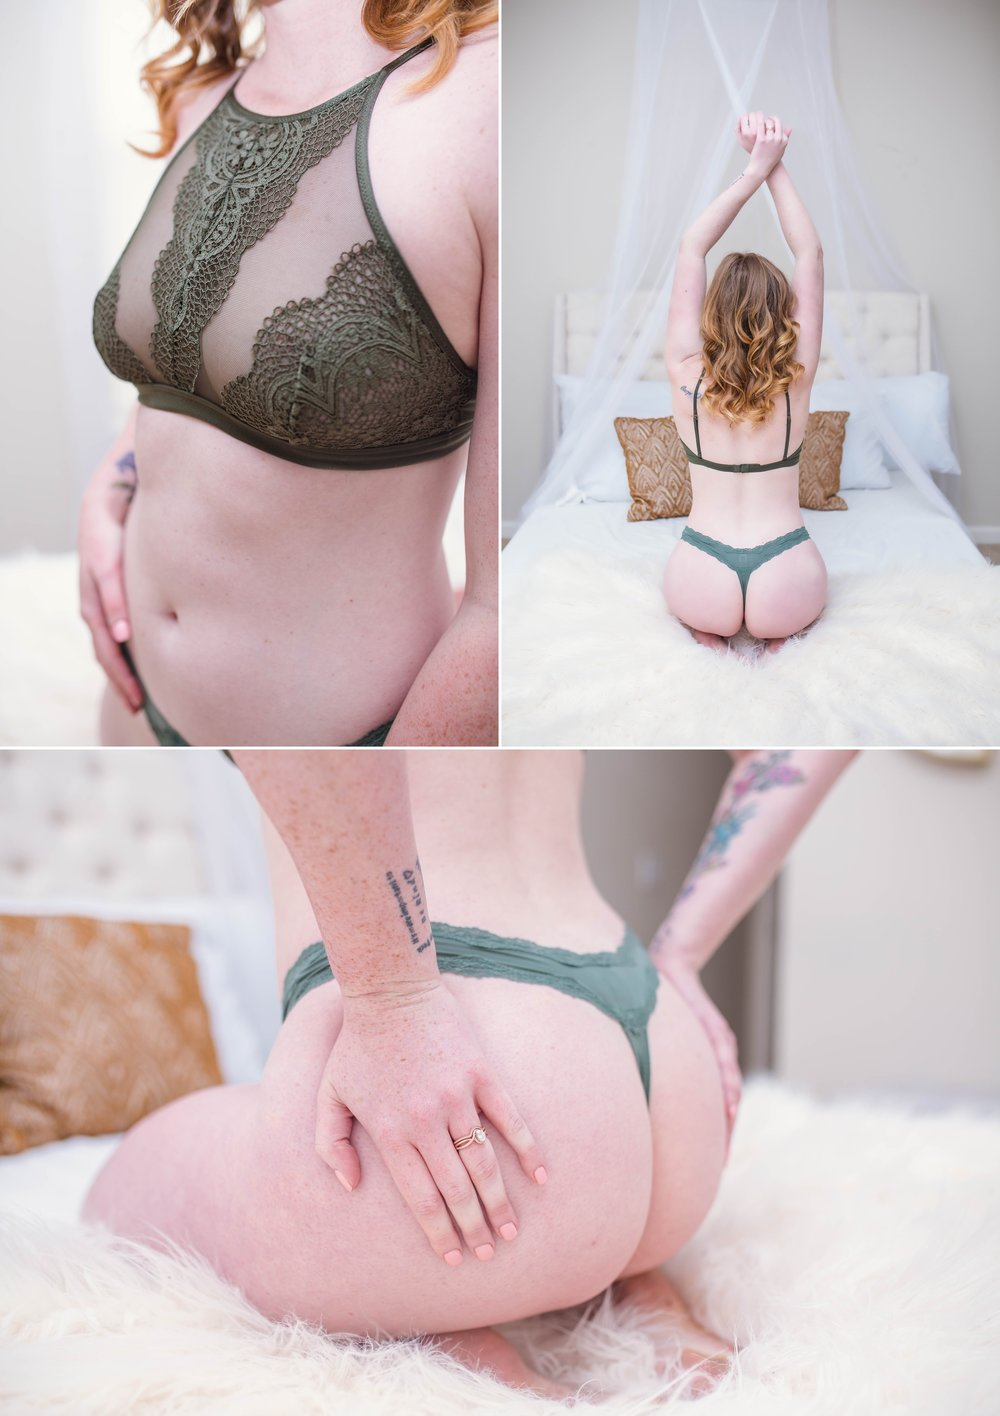 Raleigh North Carolina Female Boudoir Photographer - Johanna Dye Photography